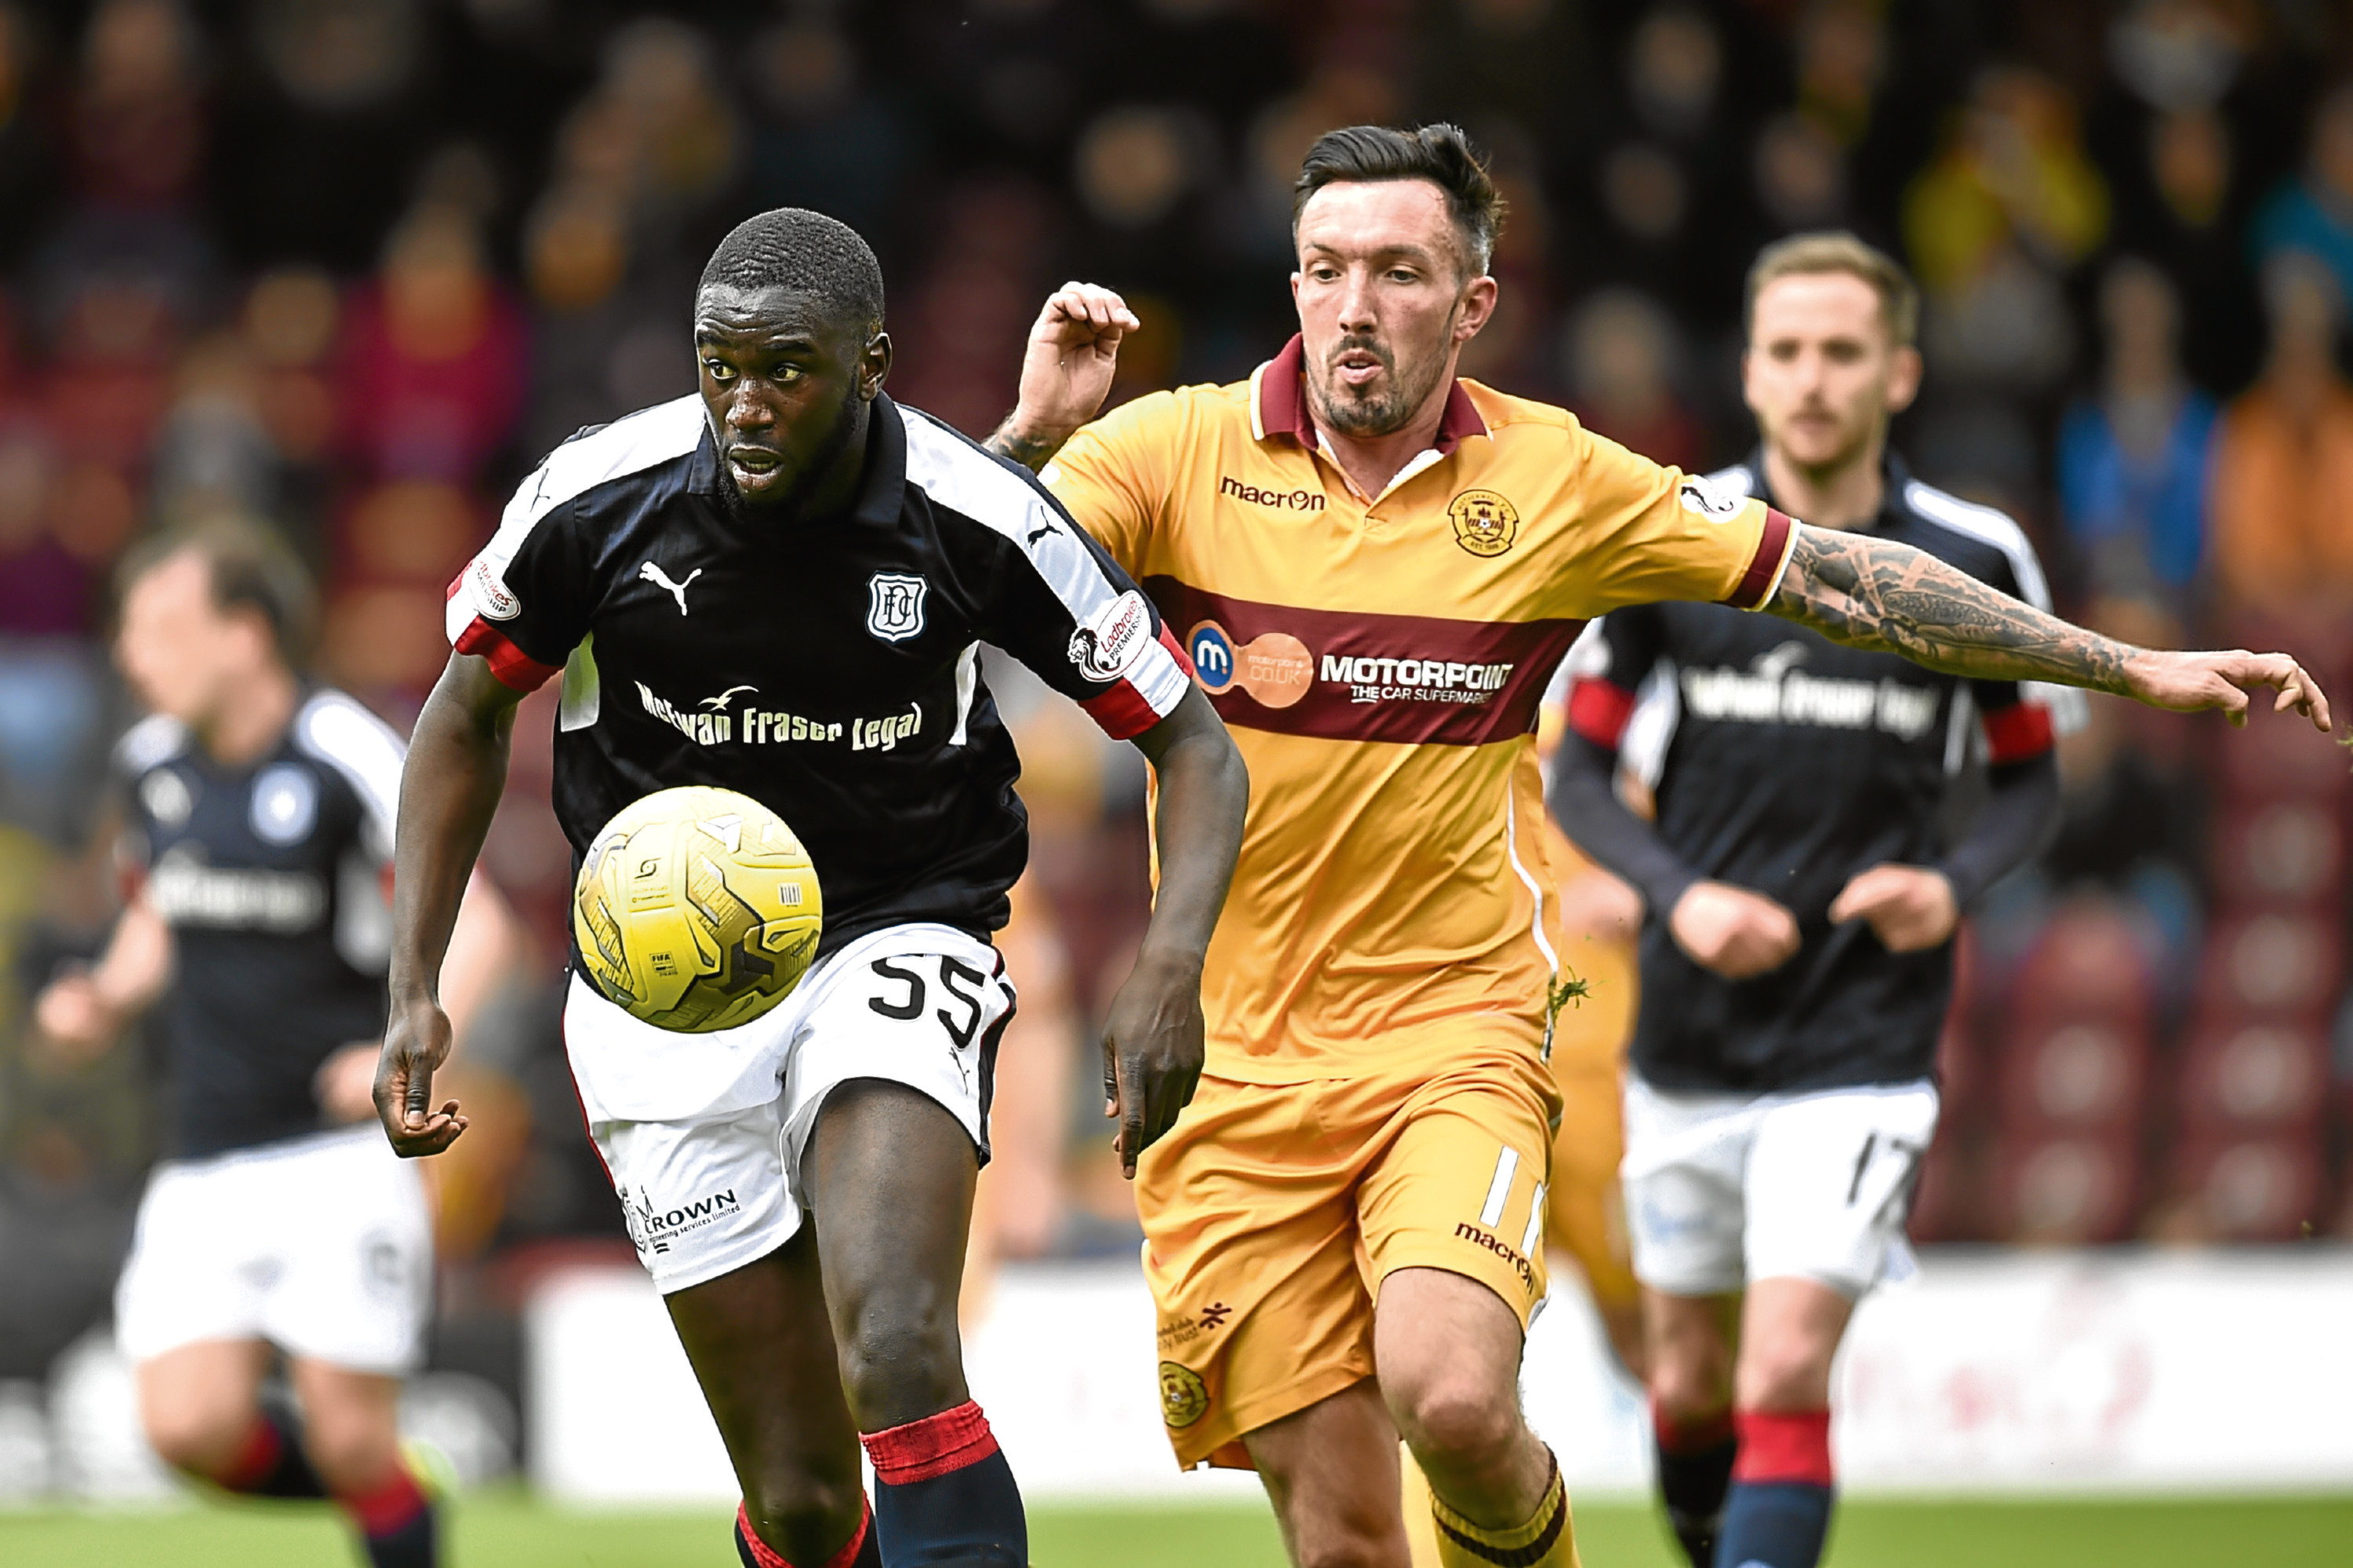 Kevin Gomis has left the club. More are expected to follow.